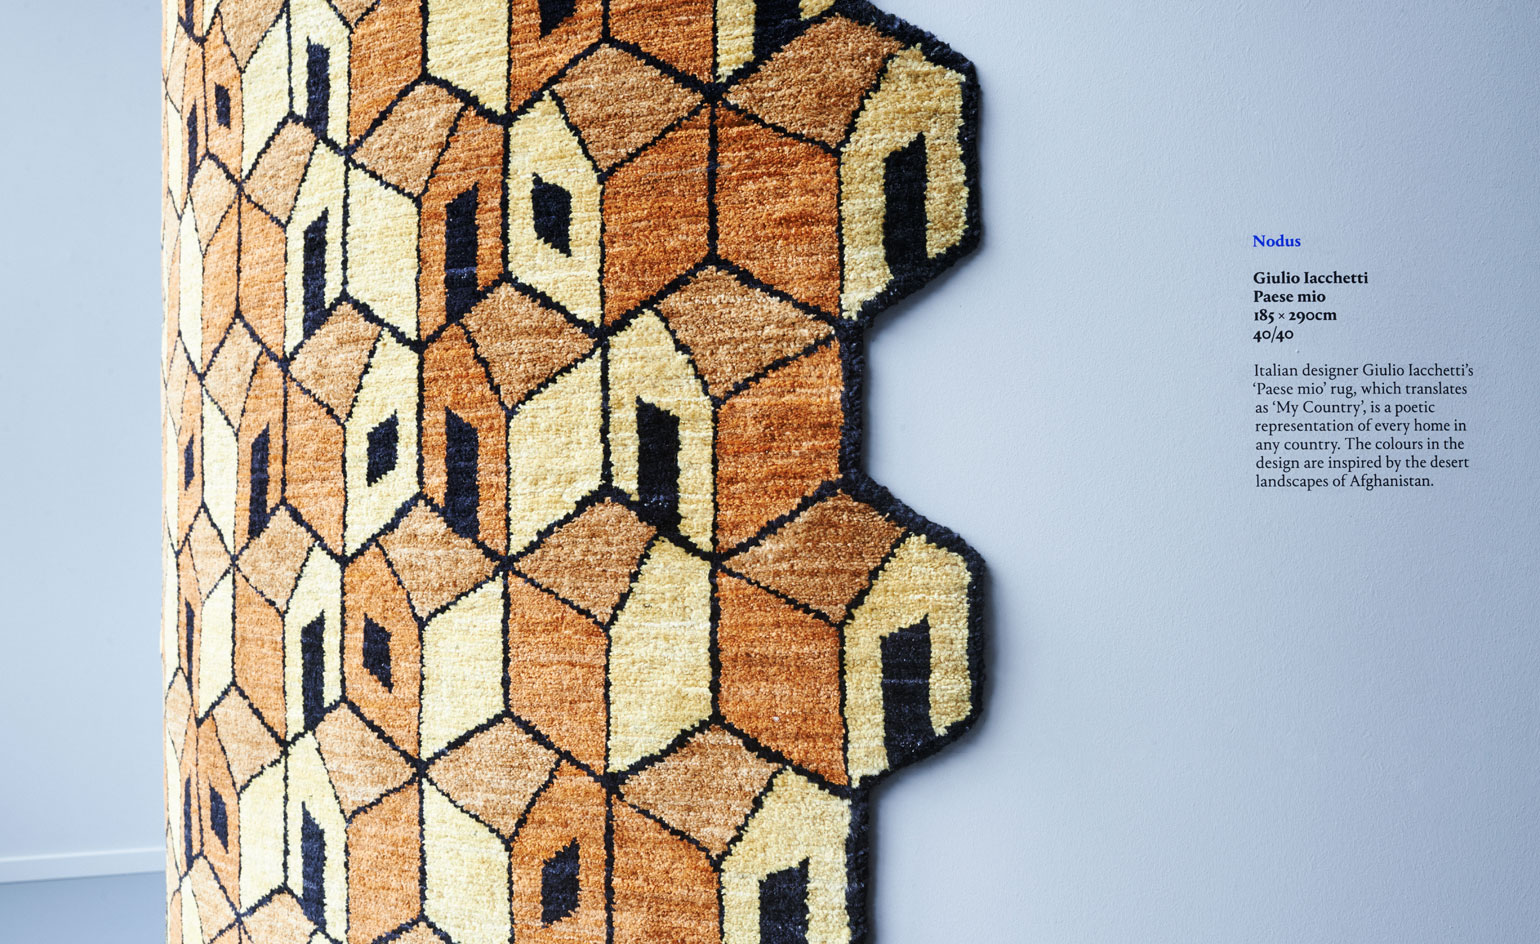 Wallpaper* AfghanMade Celebrates Traditional Craft And